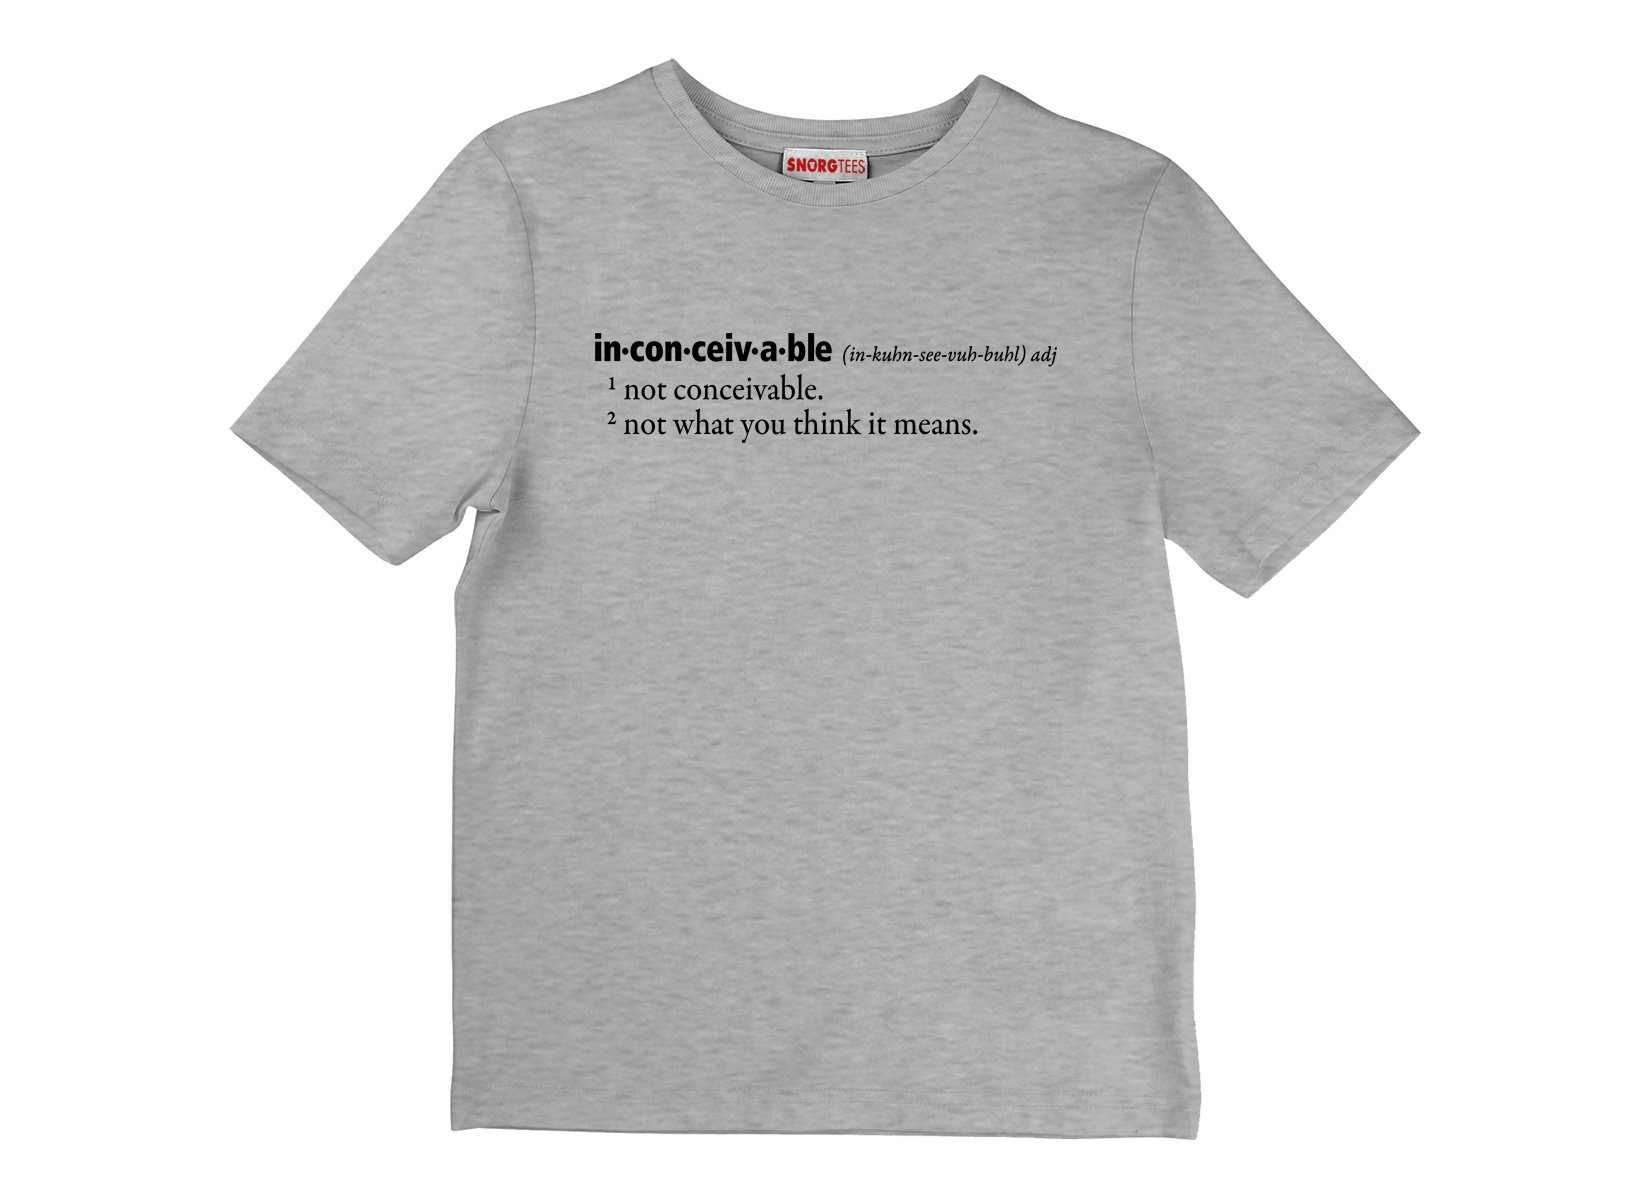 Inconceivable Definition on Kids T-Shirt